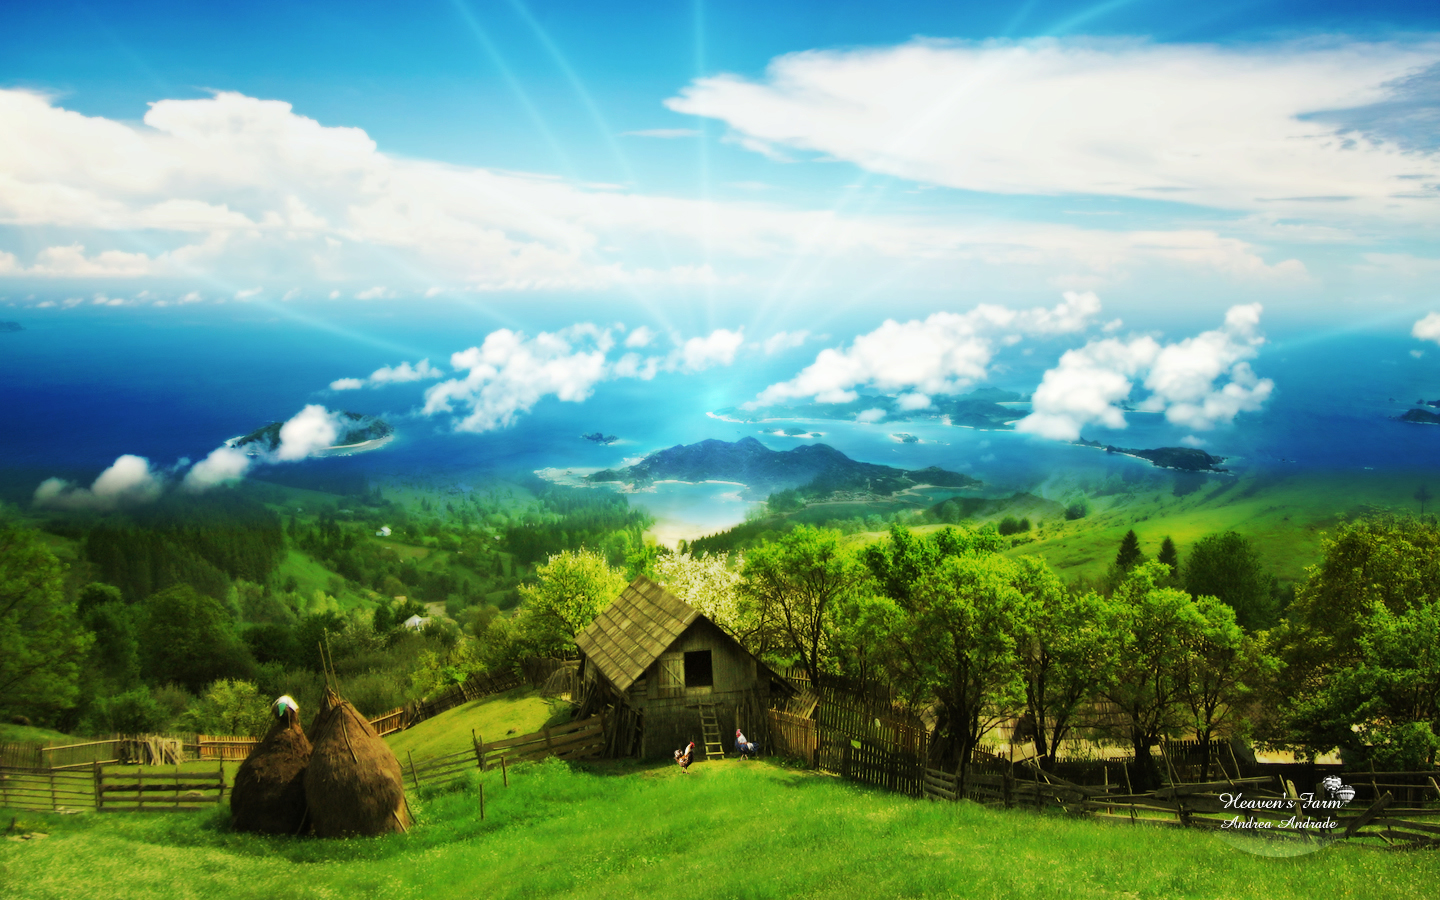 http://2.bp.blogspot.com/--w74RA0pZGA/UJvlxh26n3I/AAAAAAAAA6c/EPjbYNO9tcw/s1600/heavens-farm-hd-wallpaper-desktop-background.jpg